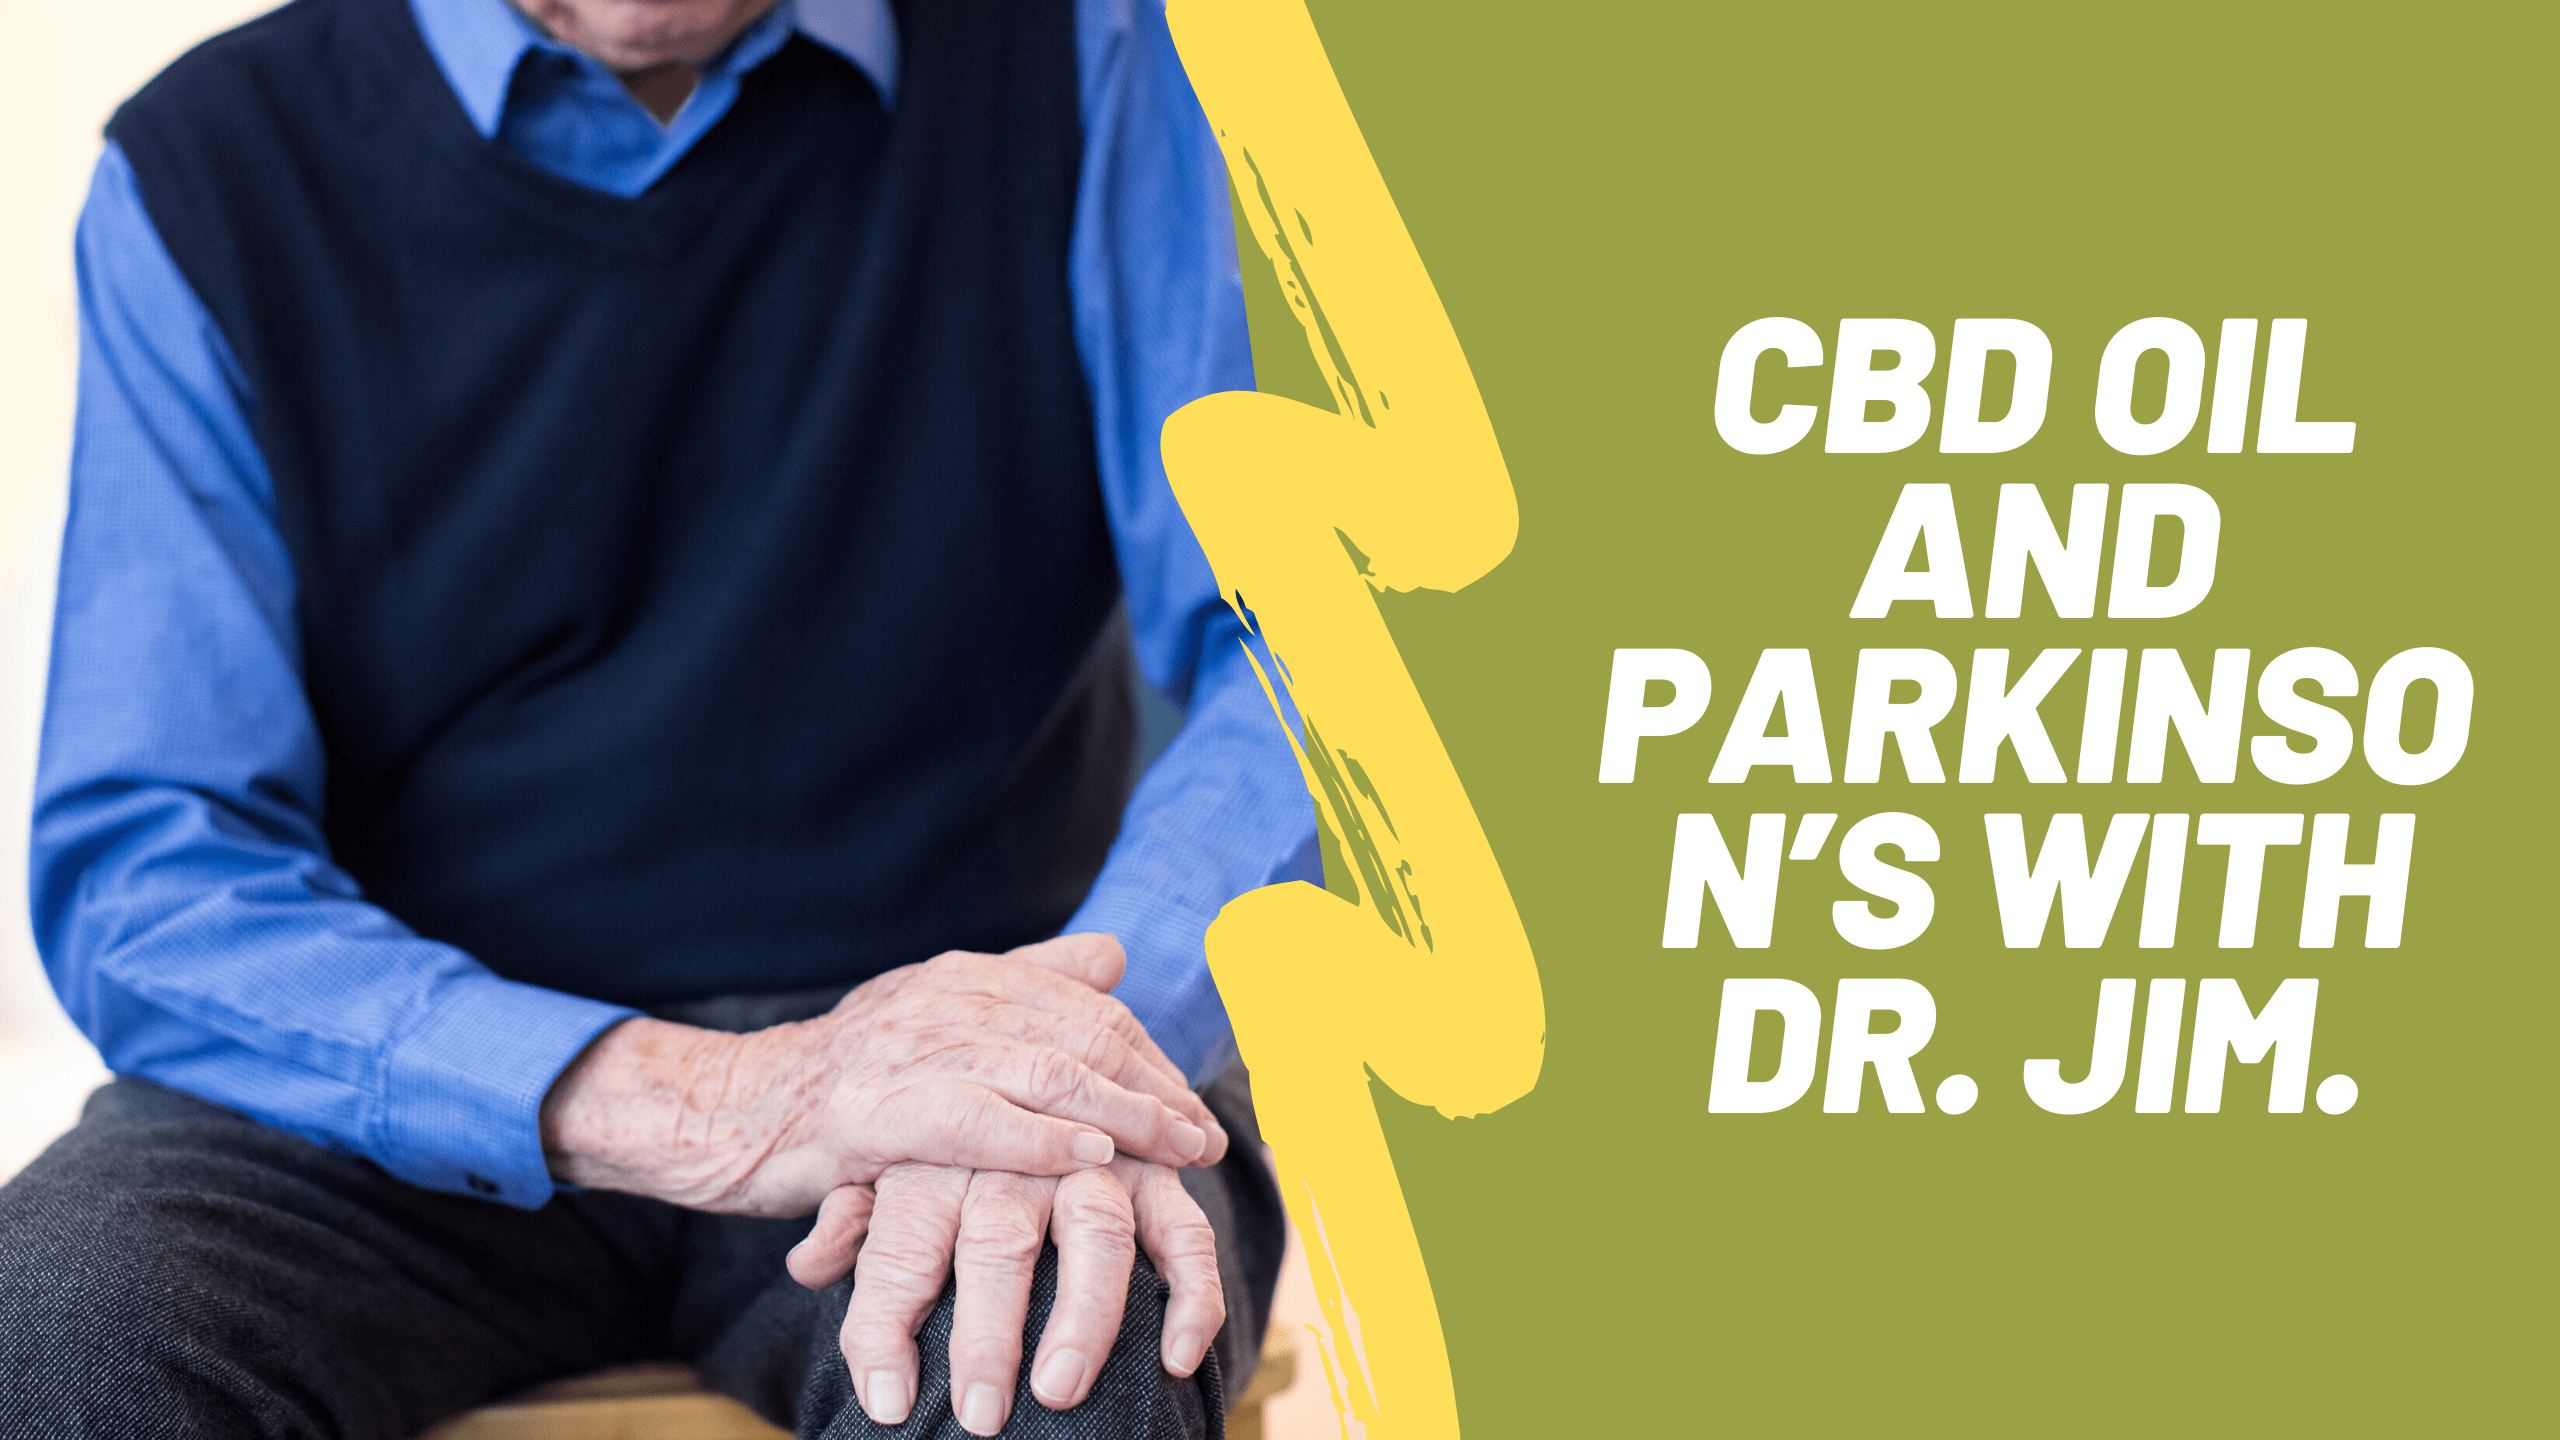 CBD Oil and Parkinson's with Dr. Jim.